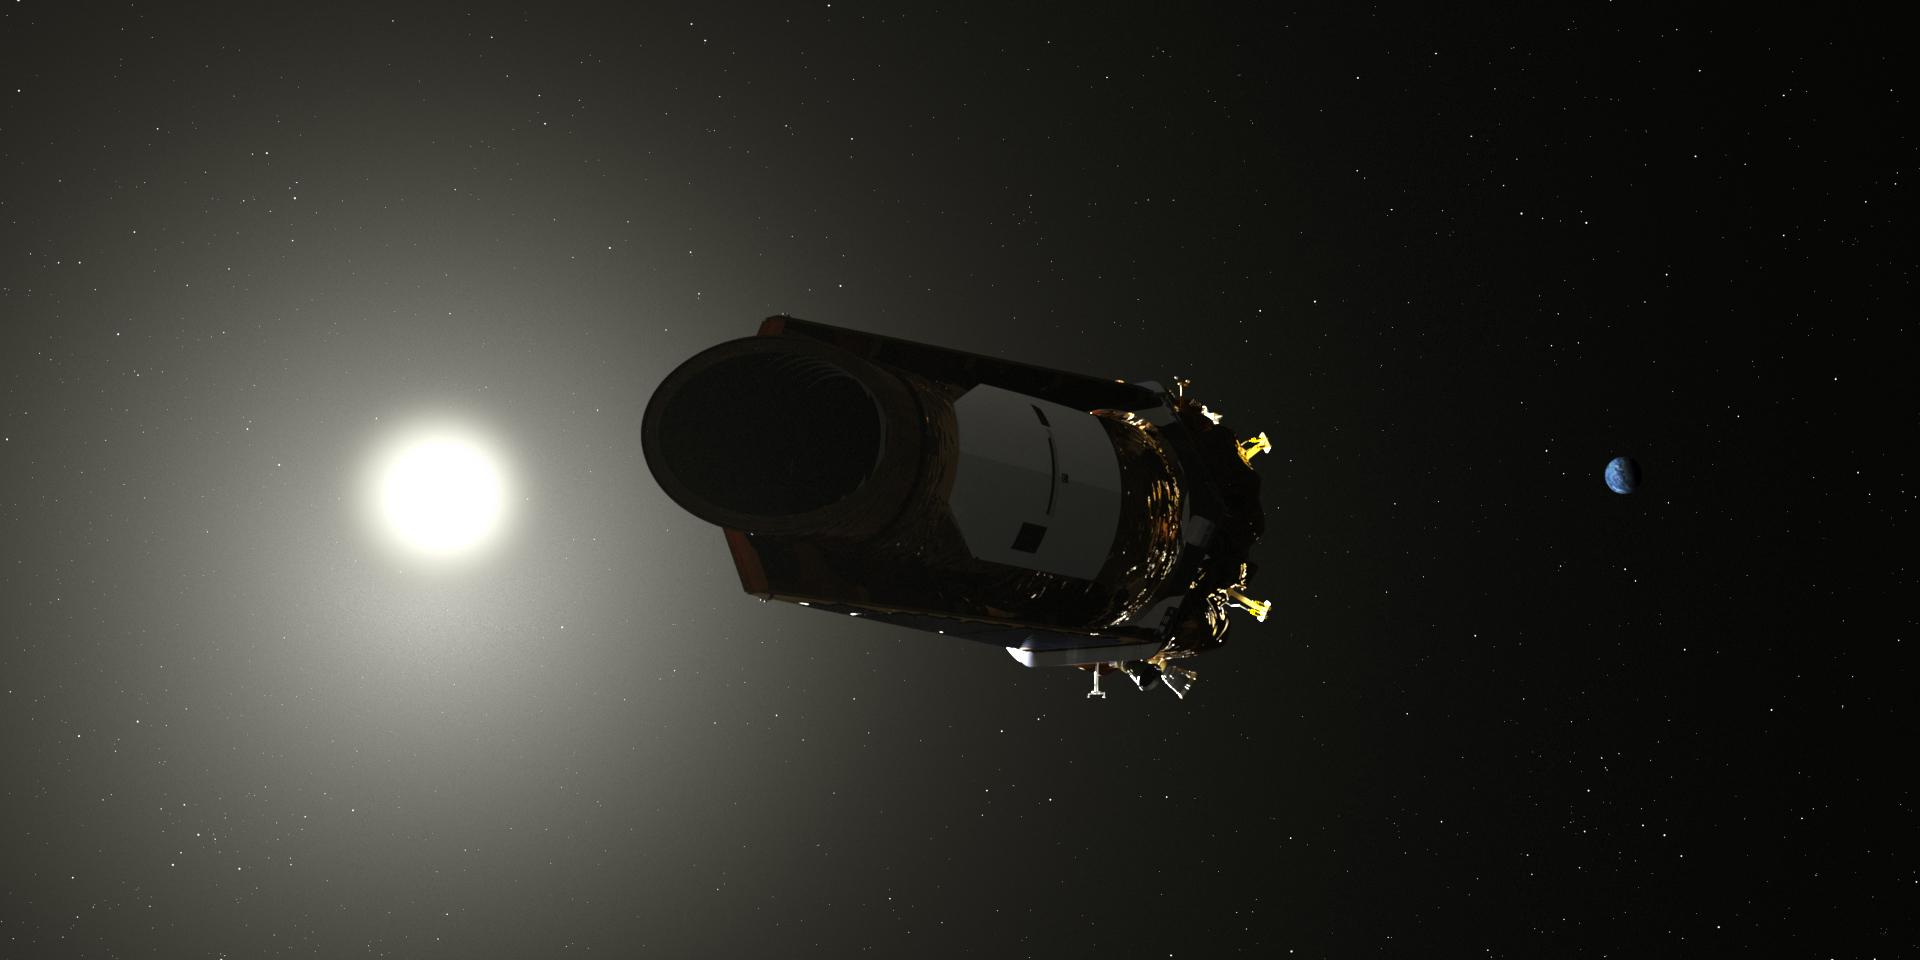 Kepler Space Telescope is alive only for a few months from now